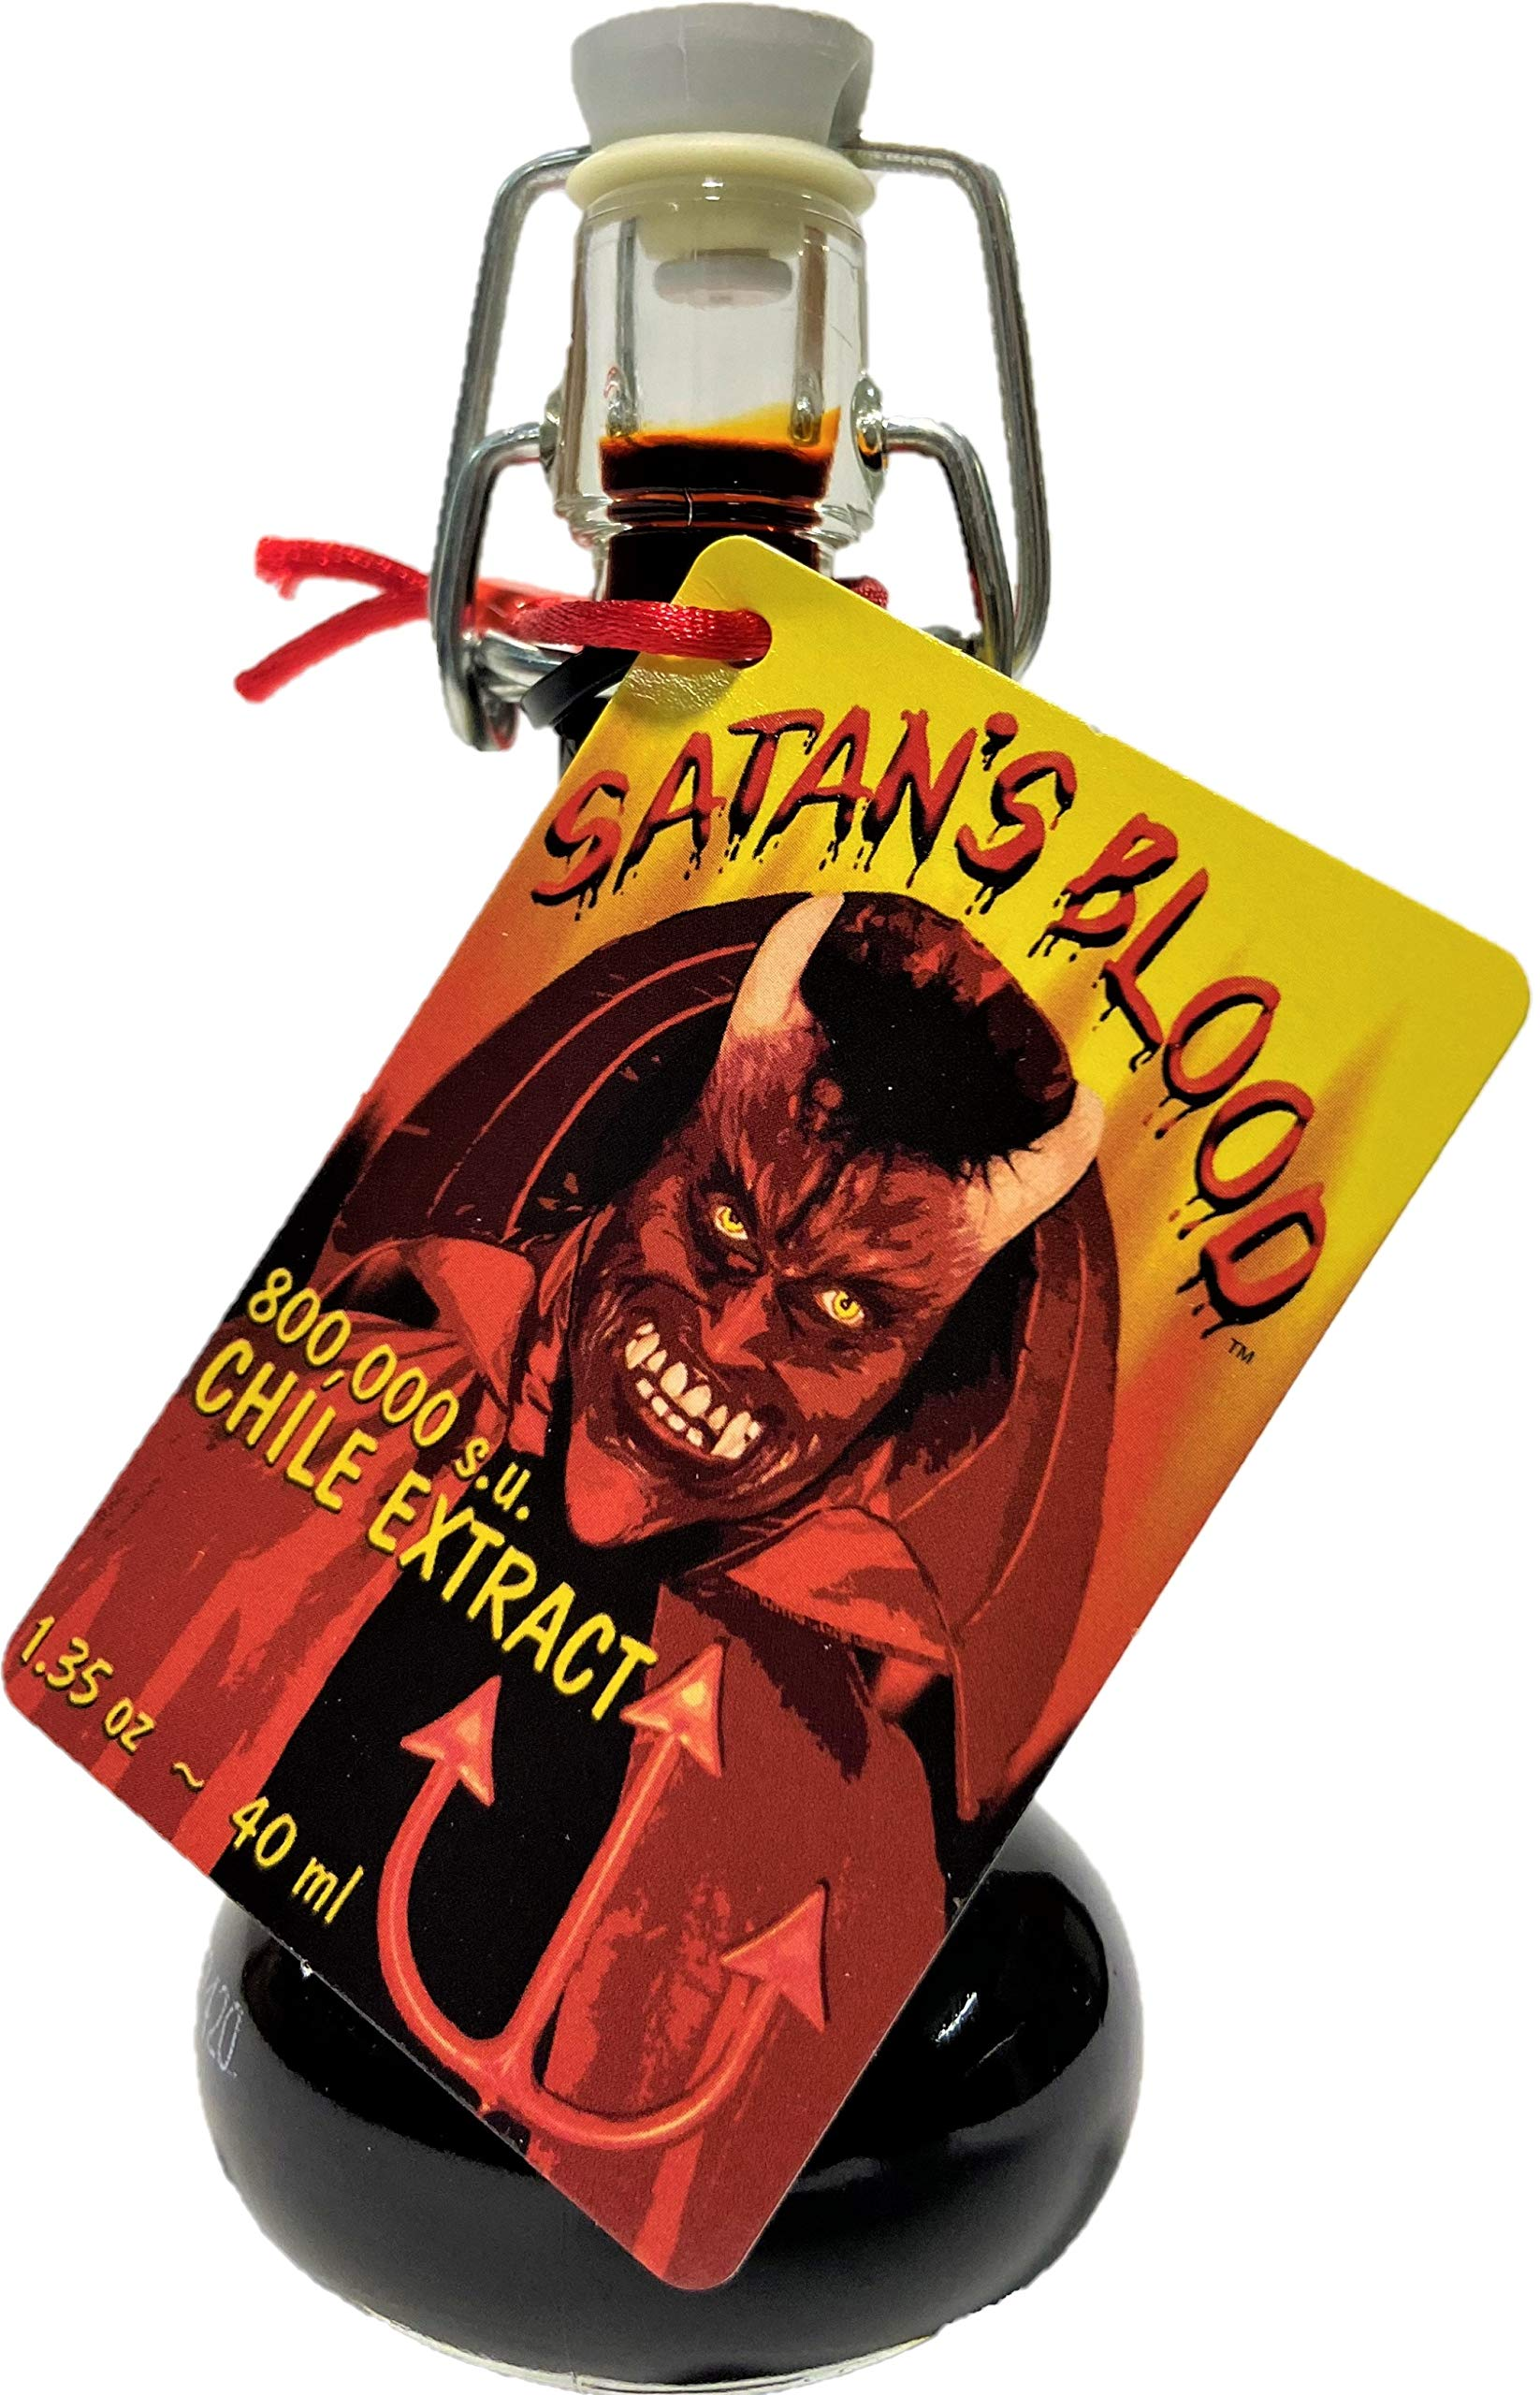 Satan's Blood Chile Pepper Extract Hot Sauce, 1.35 Ounce